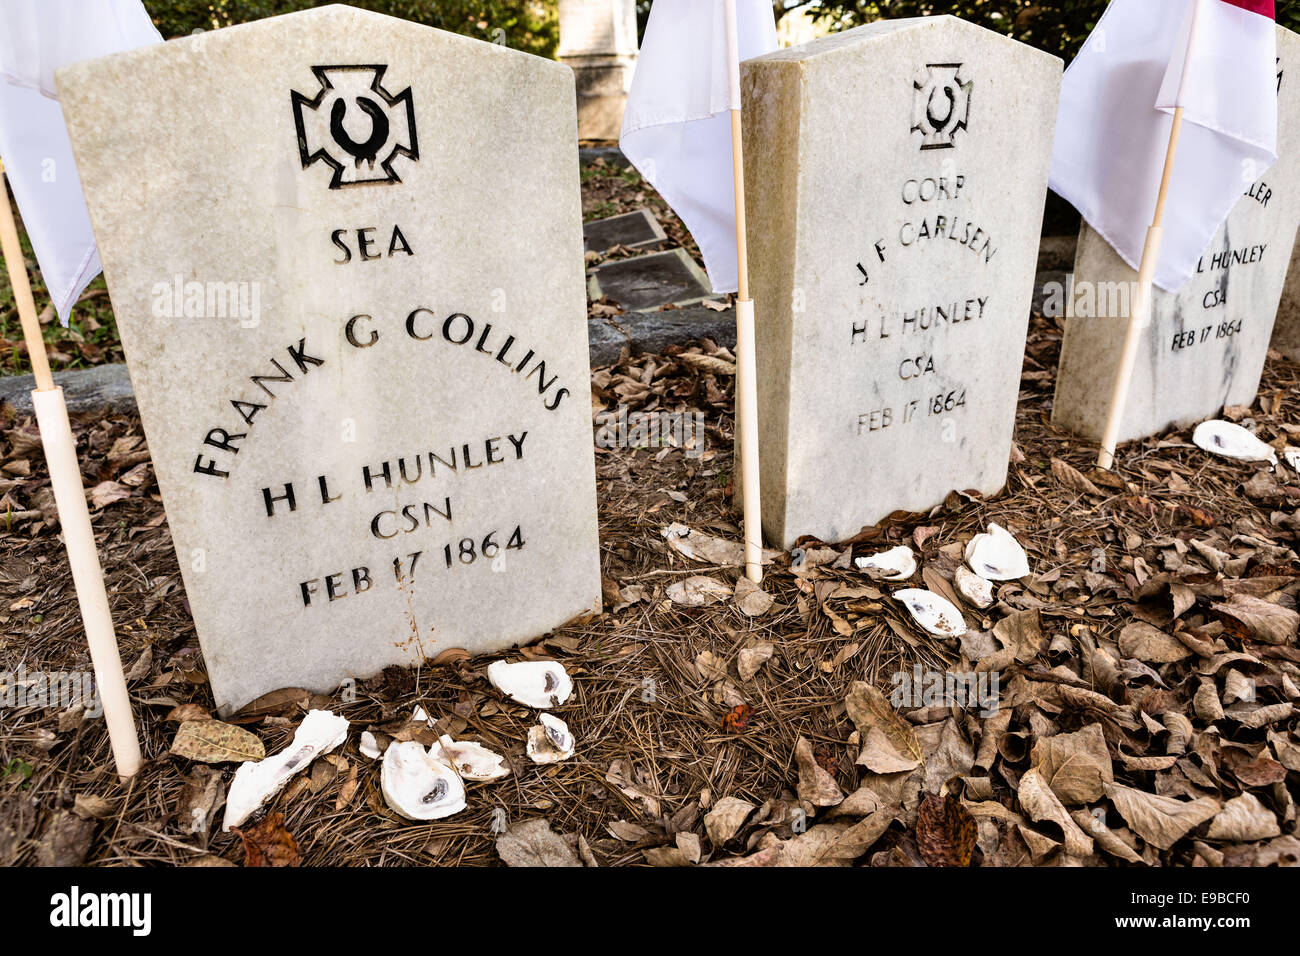 Grave site of the civil war era submarine HL Hunley sailors in historic Magnolia Cemetery in Charleston, South Carolina. - Stock Image